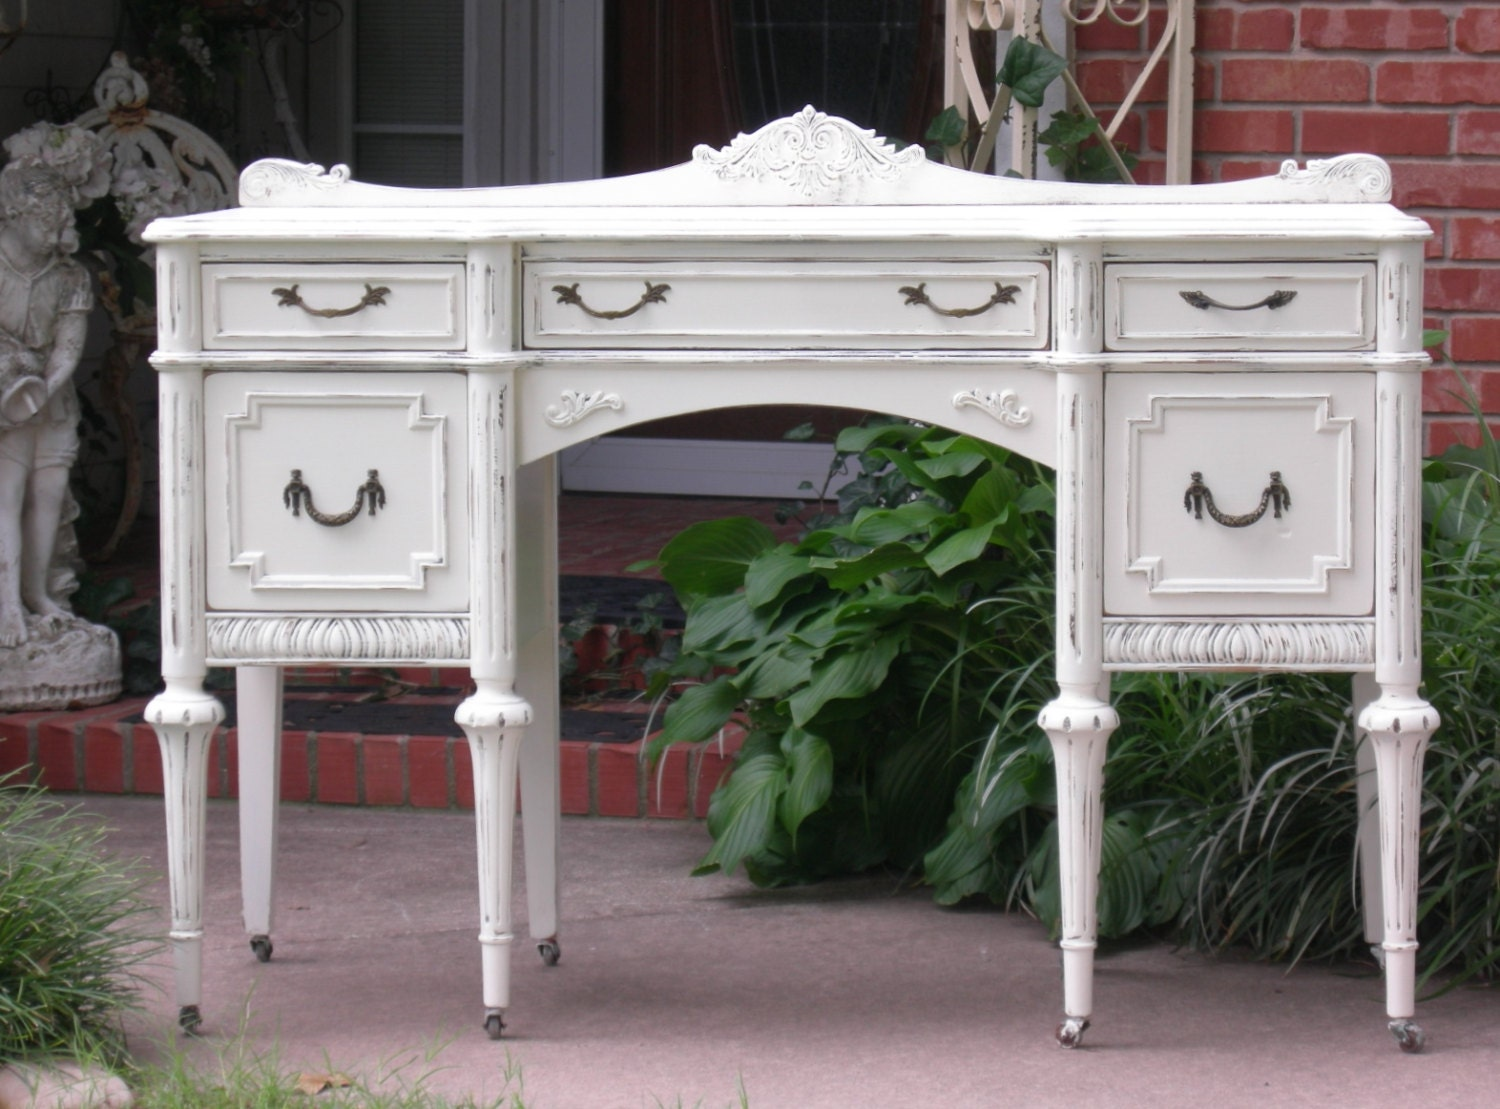 CUSTOM DESK Order Your Own Shabby Chic Antique Furniture Hand Painted  Reclaimed Restored Home Office Writing Table Bedroom Entry Console - CUSTOM DESK Order Your Own Shabby Chic Antique Furniture Hand